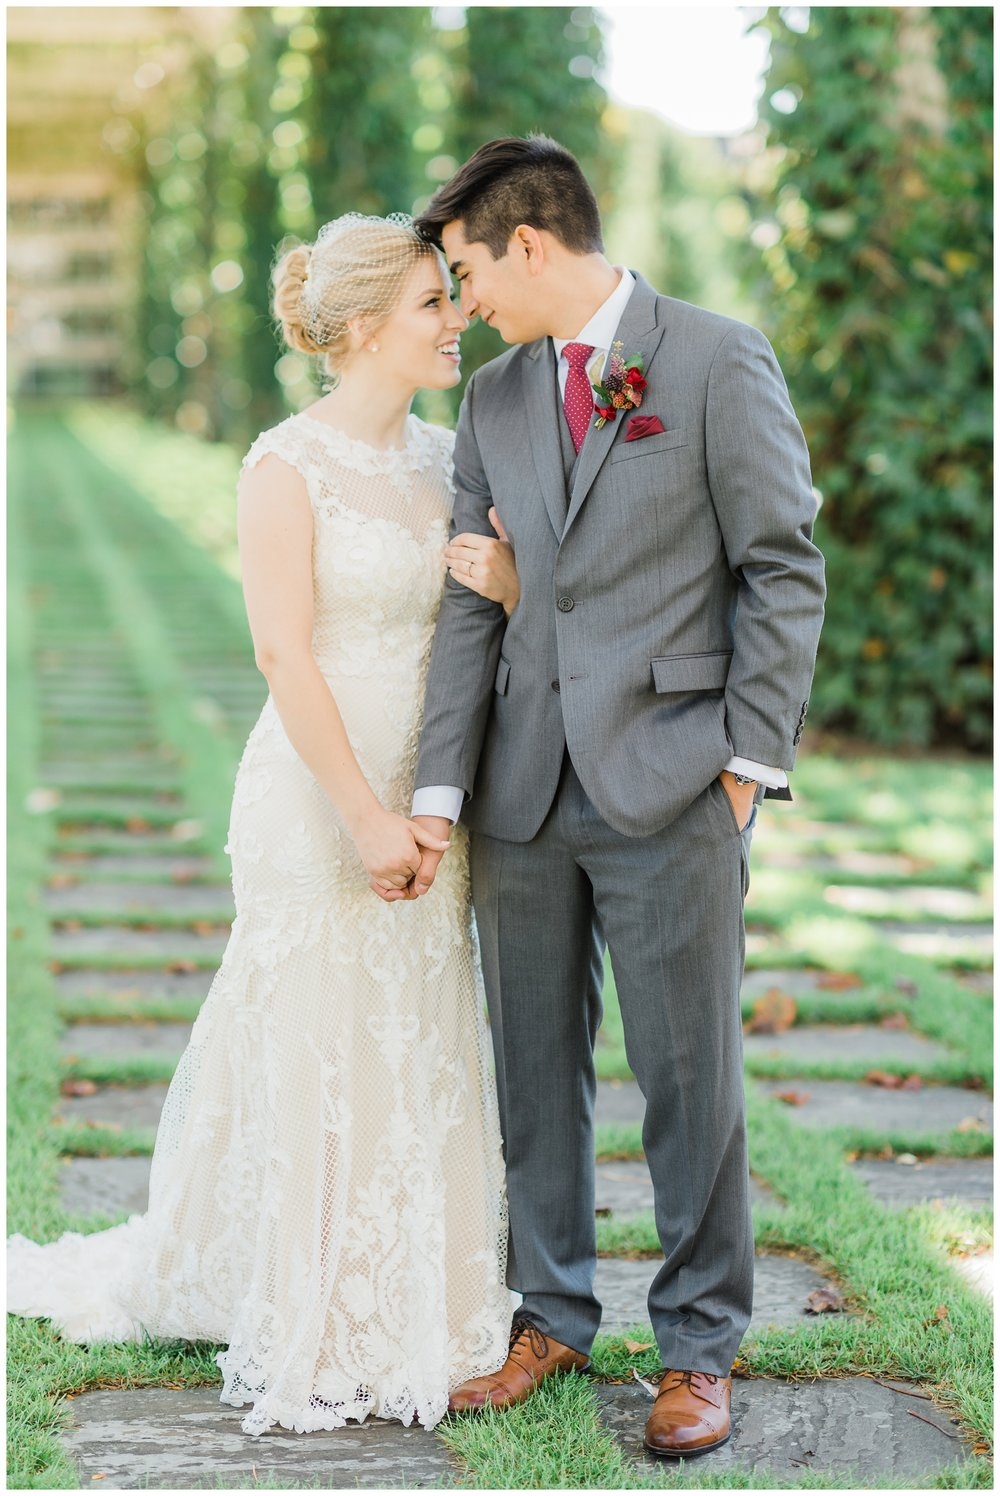 Rebecca_Shehorn_Photography_Indianapolis_Wedding_Photographer_7317.jpg